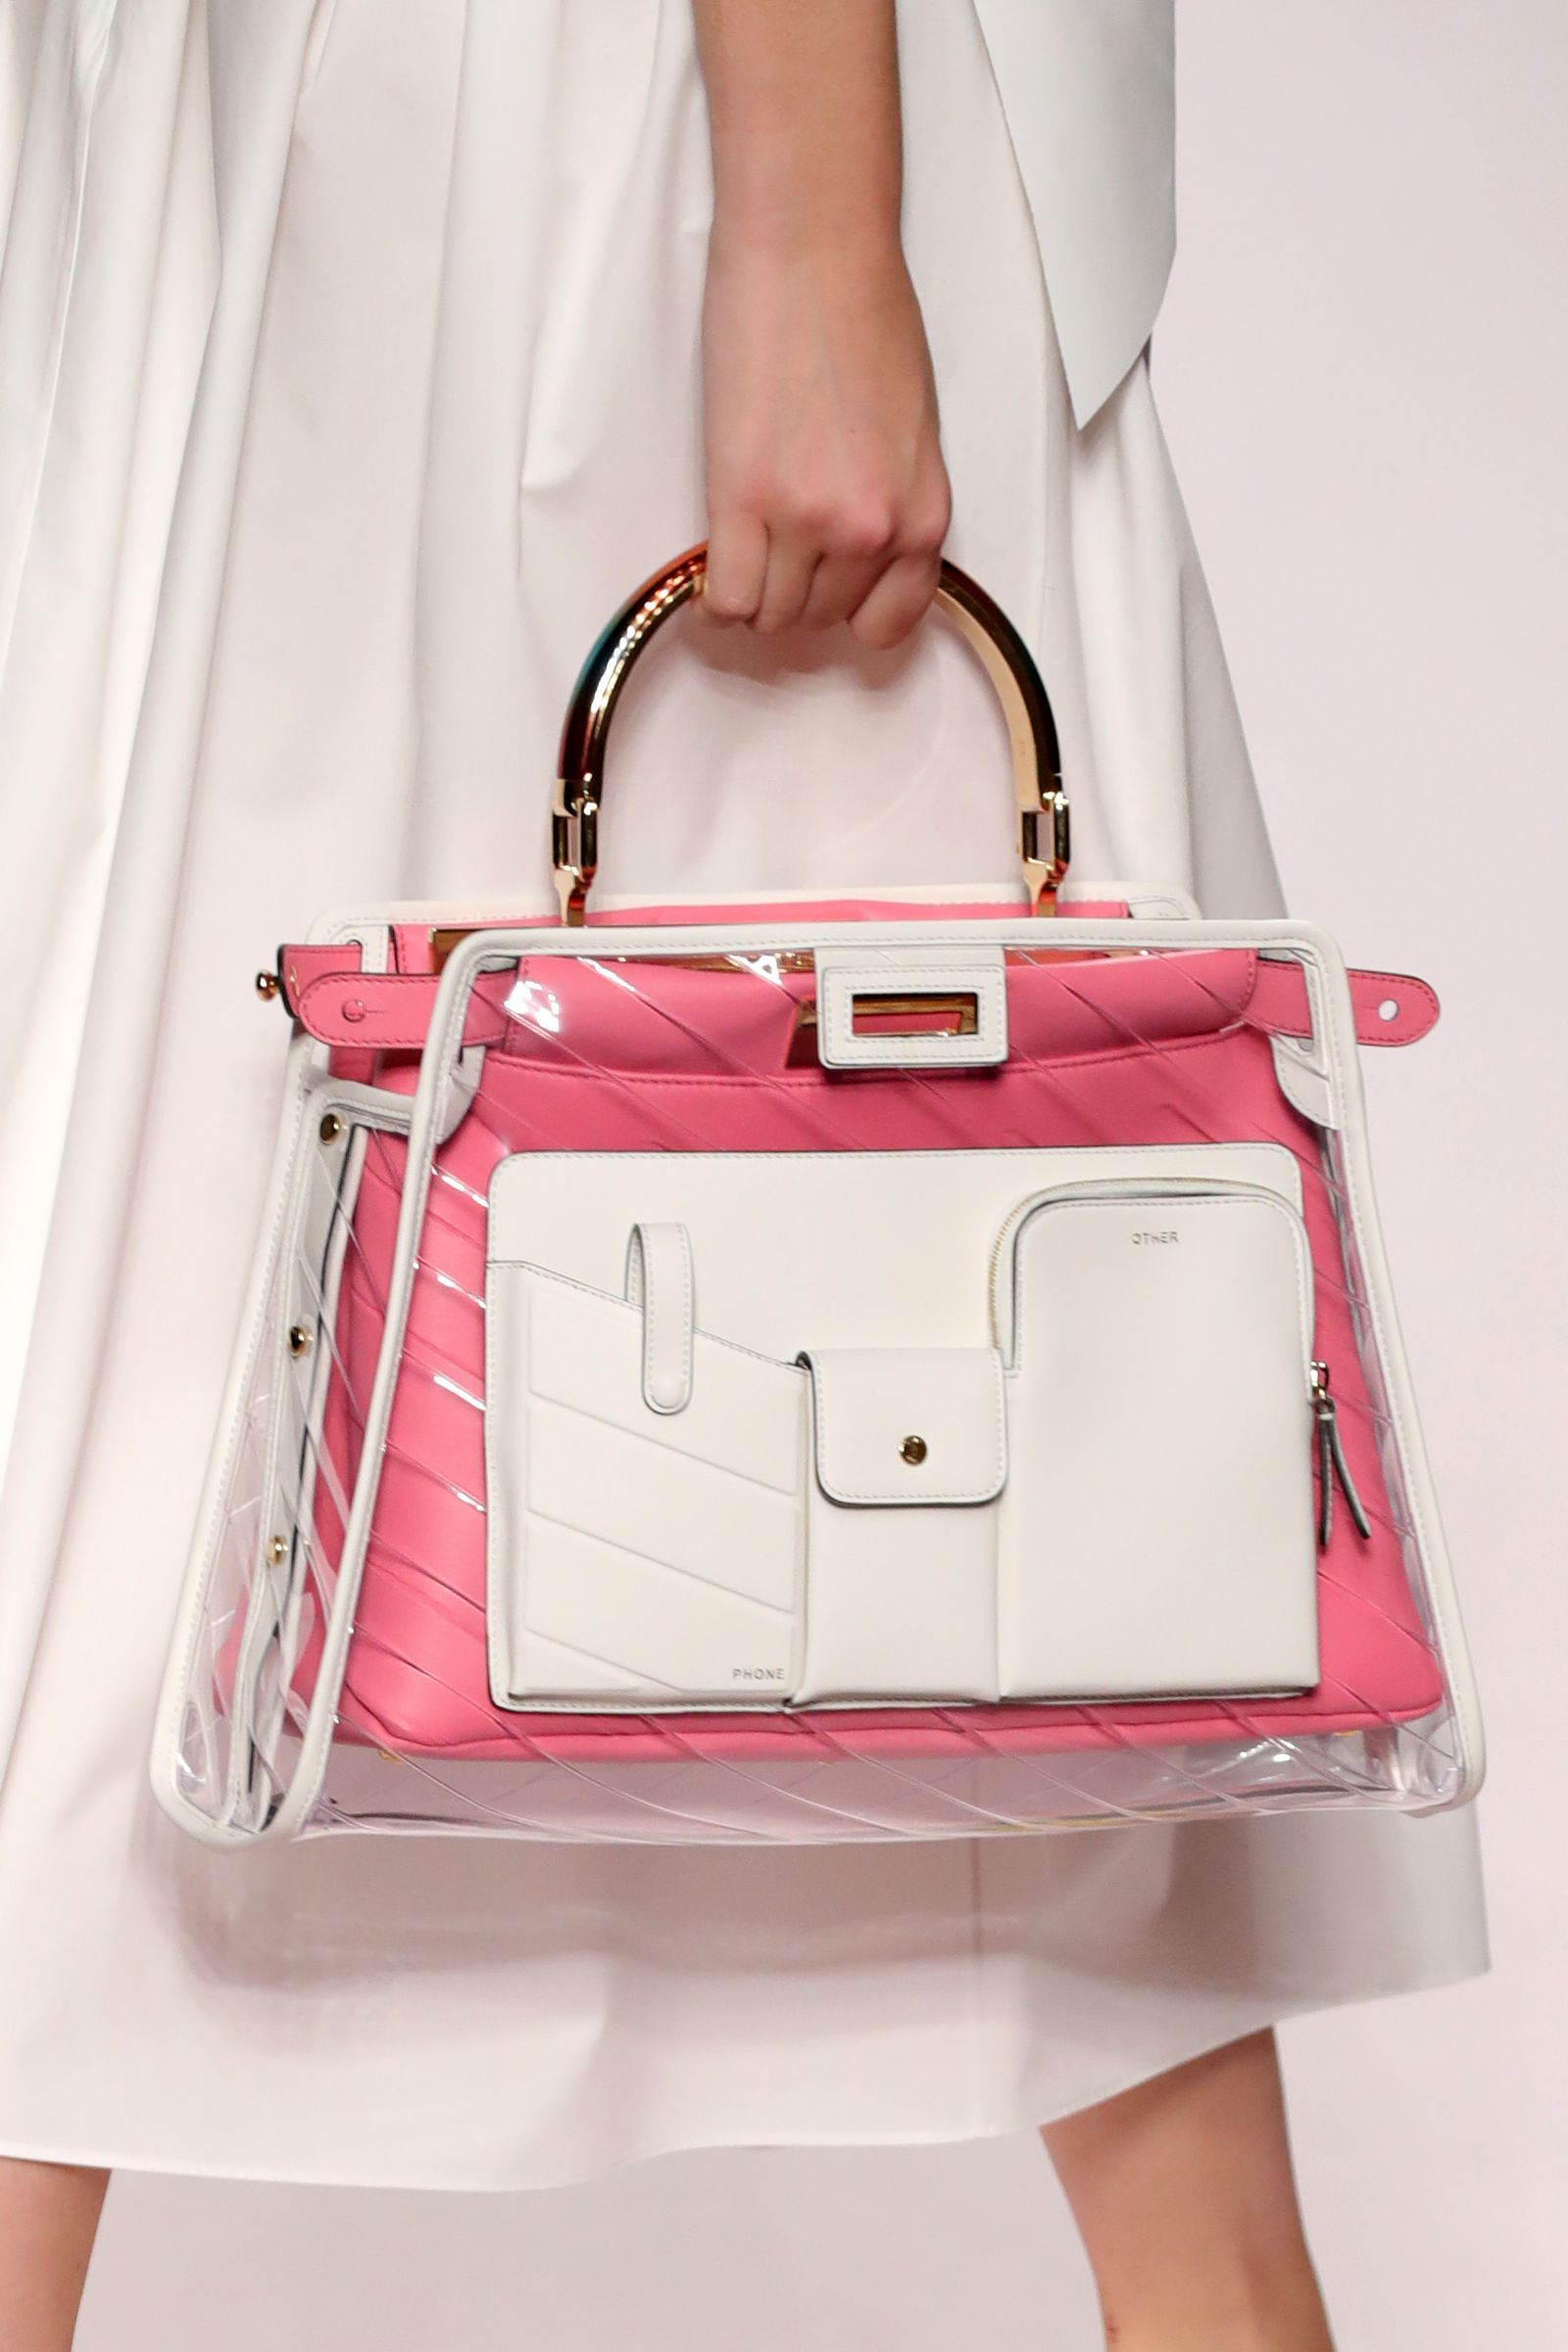 0df02335f1d Fendi Italy Fashion, Karl Lagerfeld, Clear Bags, Bags 2018, Leather Bags  Handmade